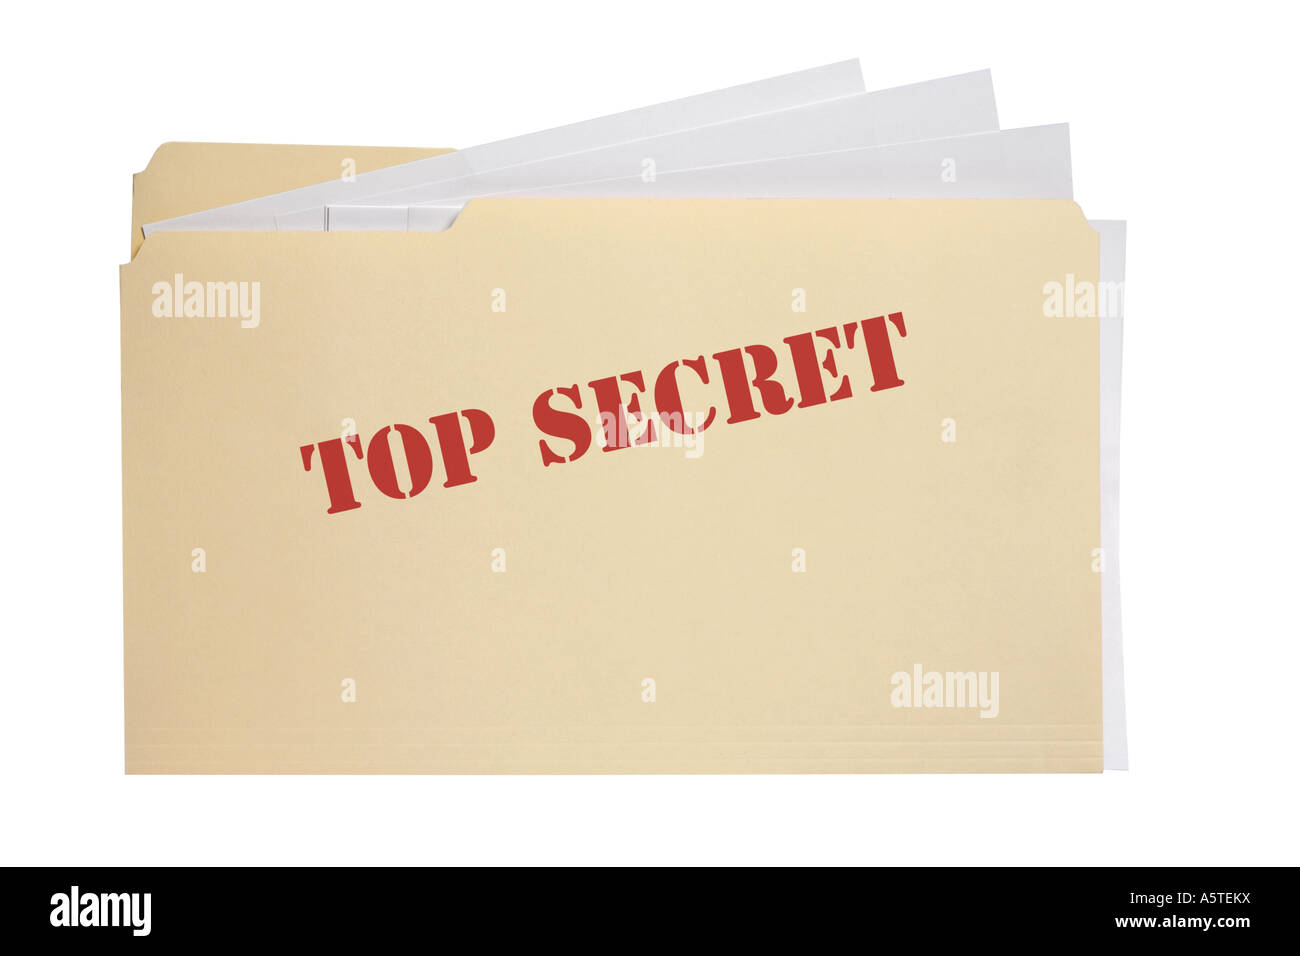 Top Secret File cut out on white background - Stock Image